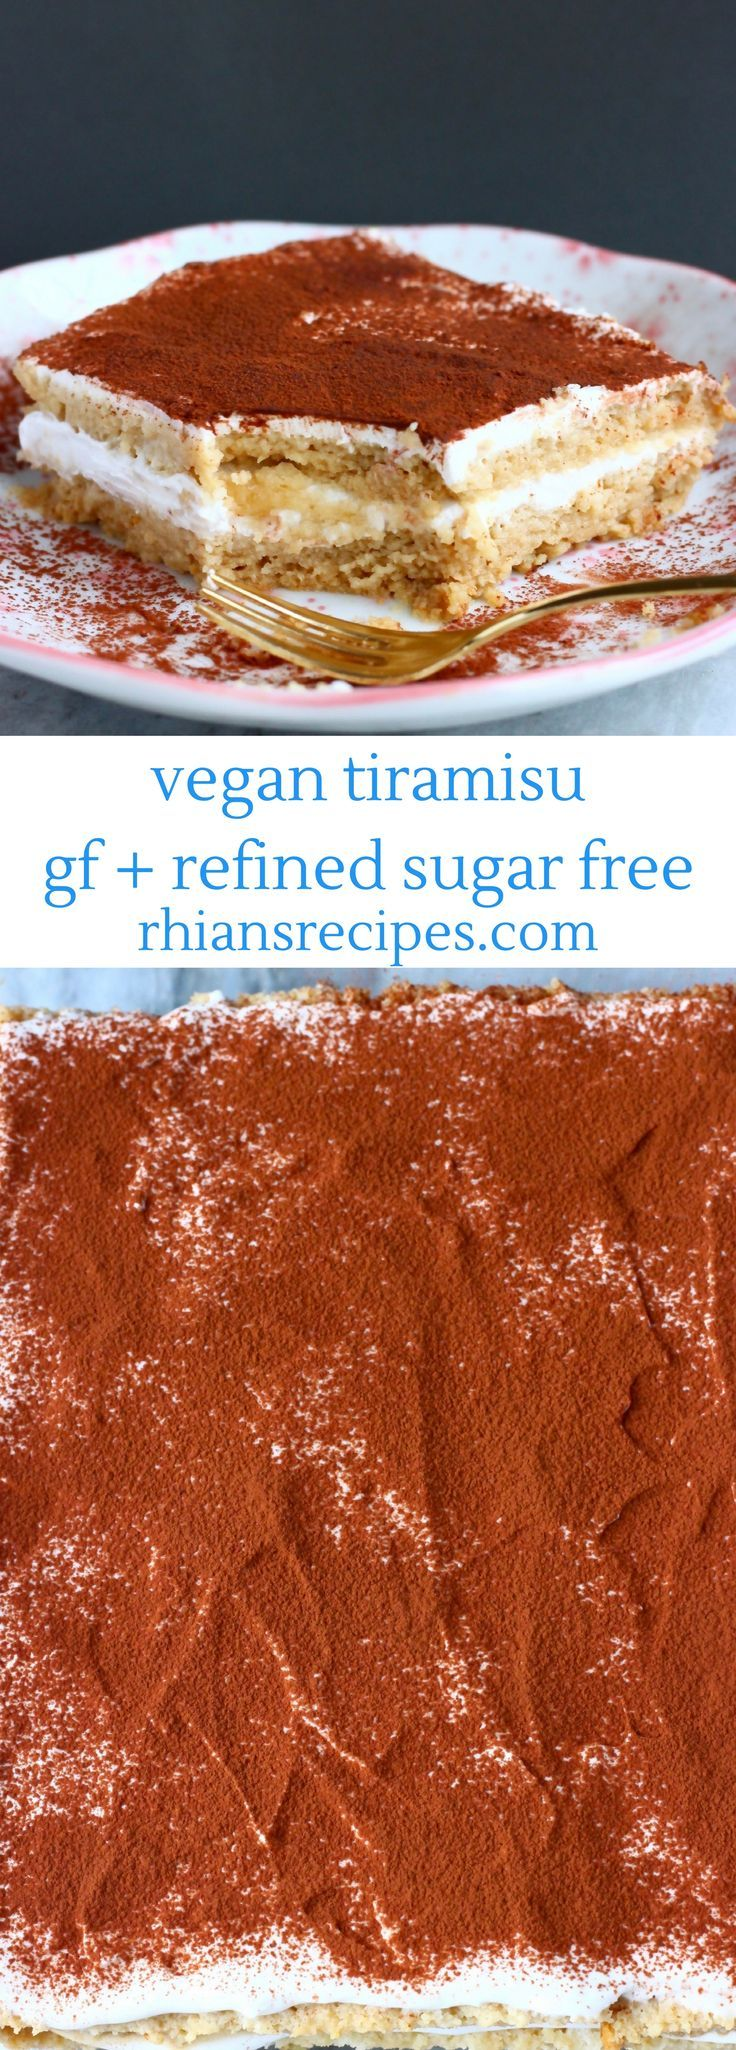 This Gluten-Free Vegan Tiramisu is aromatic, super creamy and much healthier than the traditional version! Refined sugar free. A fluffy egg-free sponge, vegan mascarpone, delicious coffee and a fine dusting of cocoa powder. Makes a perfect dessert for entertaining! #vegan #dairyfree #eggfree #glutenfree #dessert #tiramisu #coffee #ad